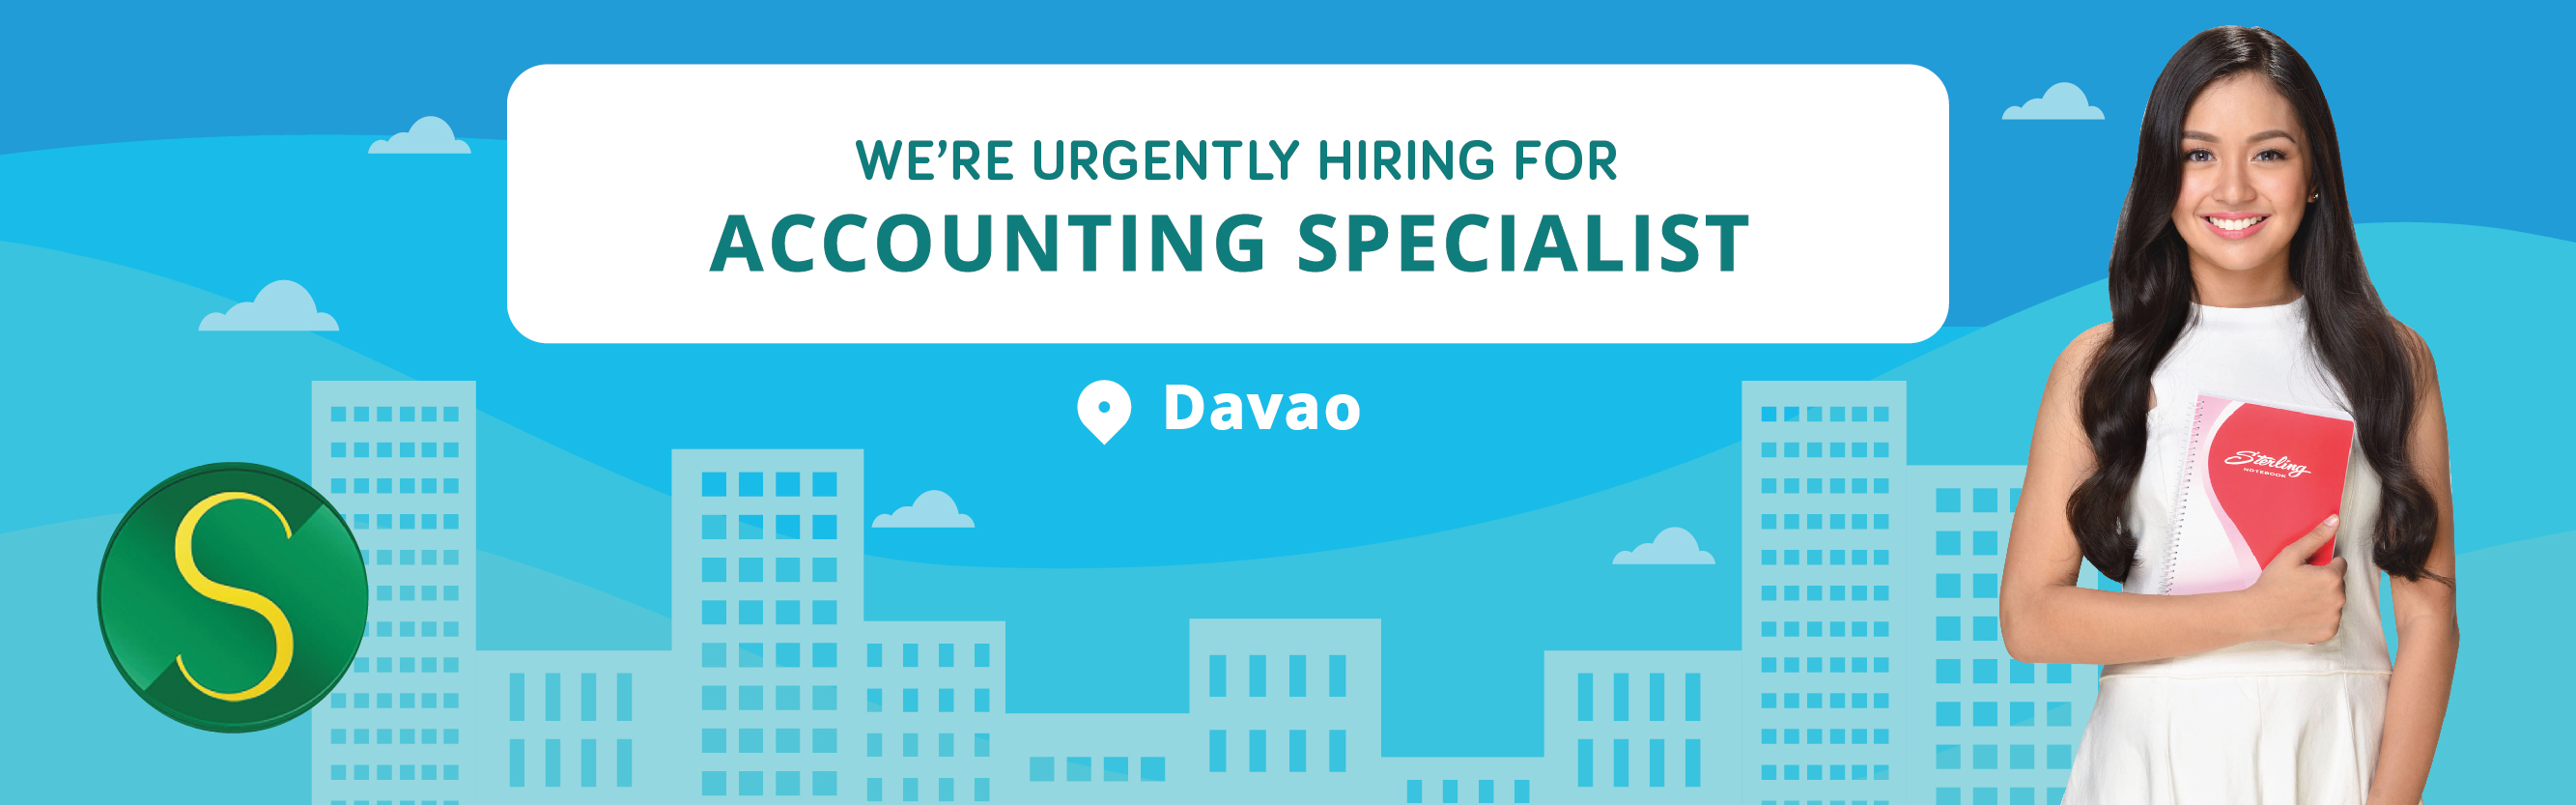 Accounting Specialist (davao Based) from Sterling Paper Group of Companies